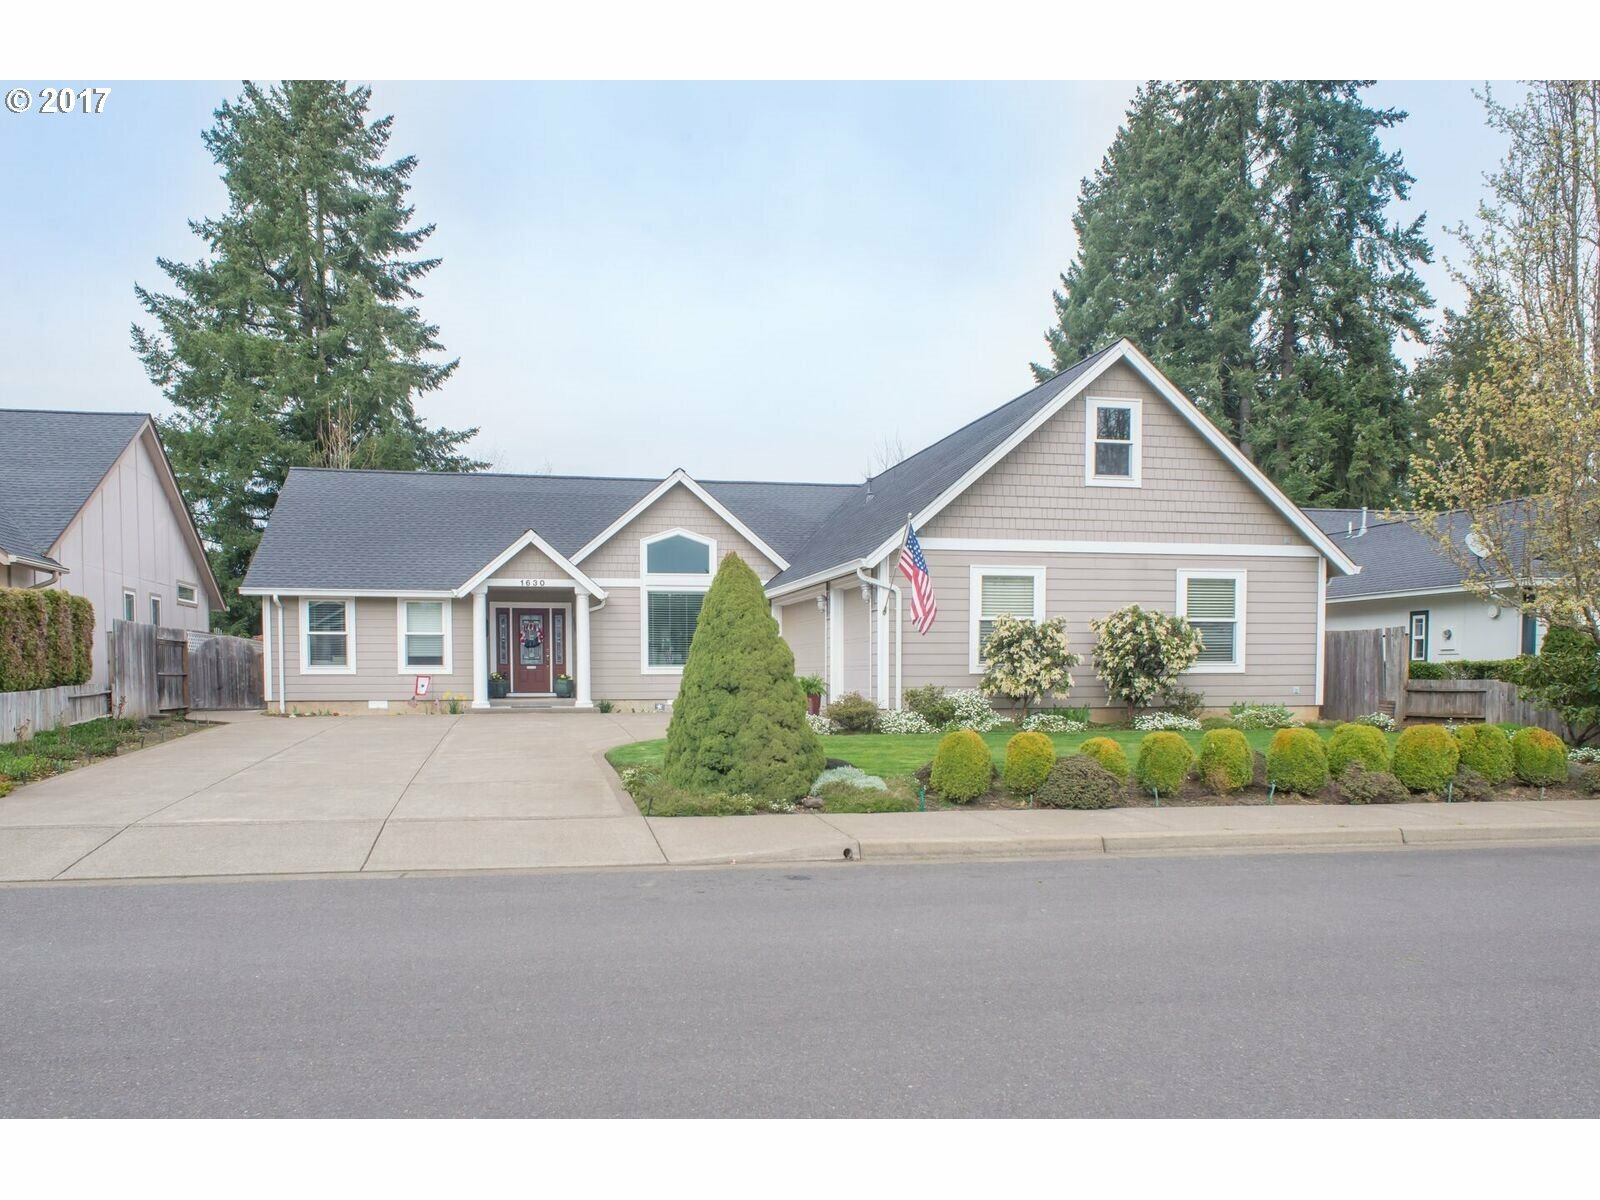 1630 Fairview Pl, Cottage Grove, OR - USA (photo 1)